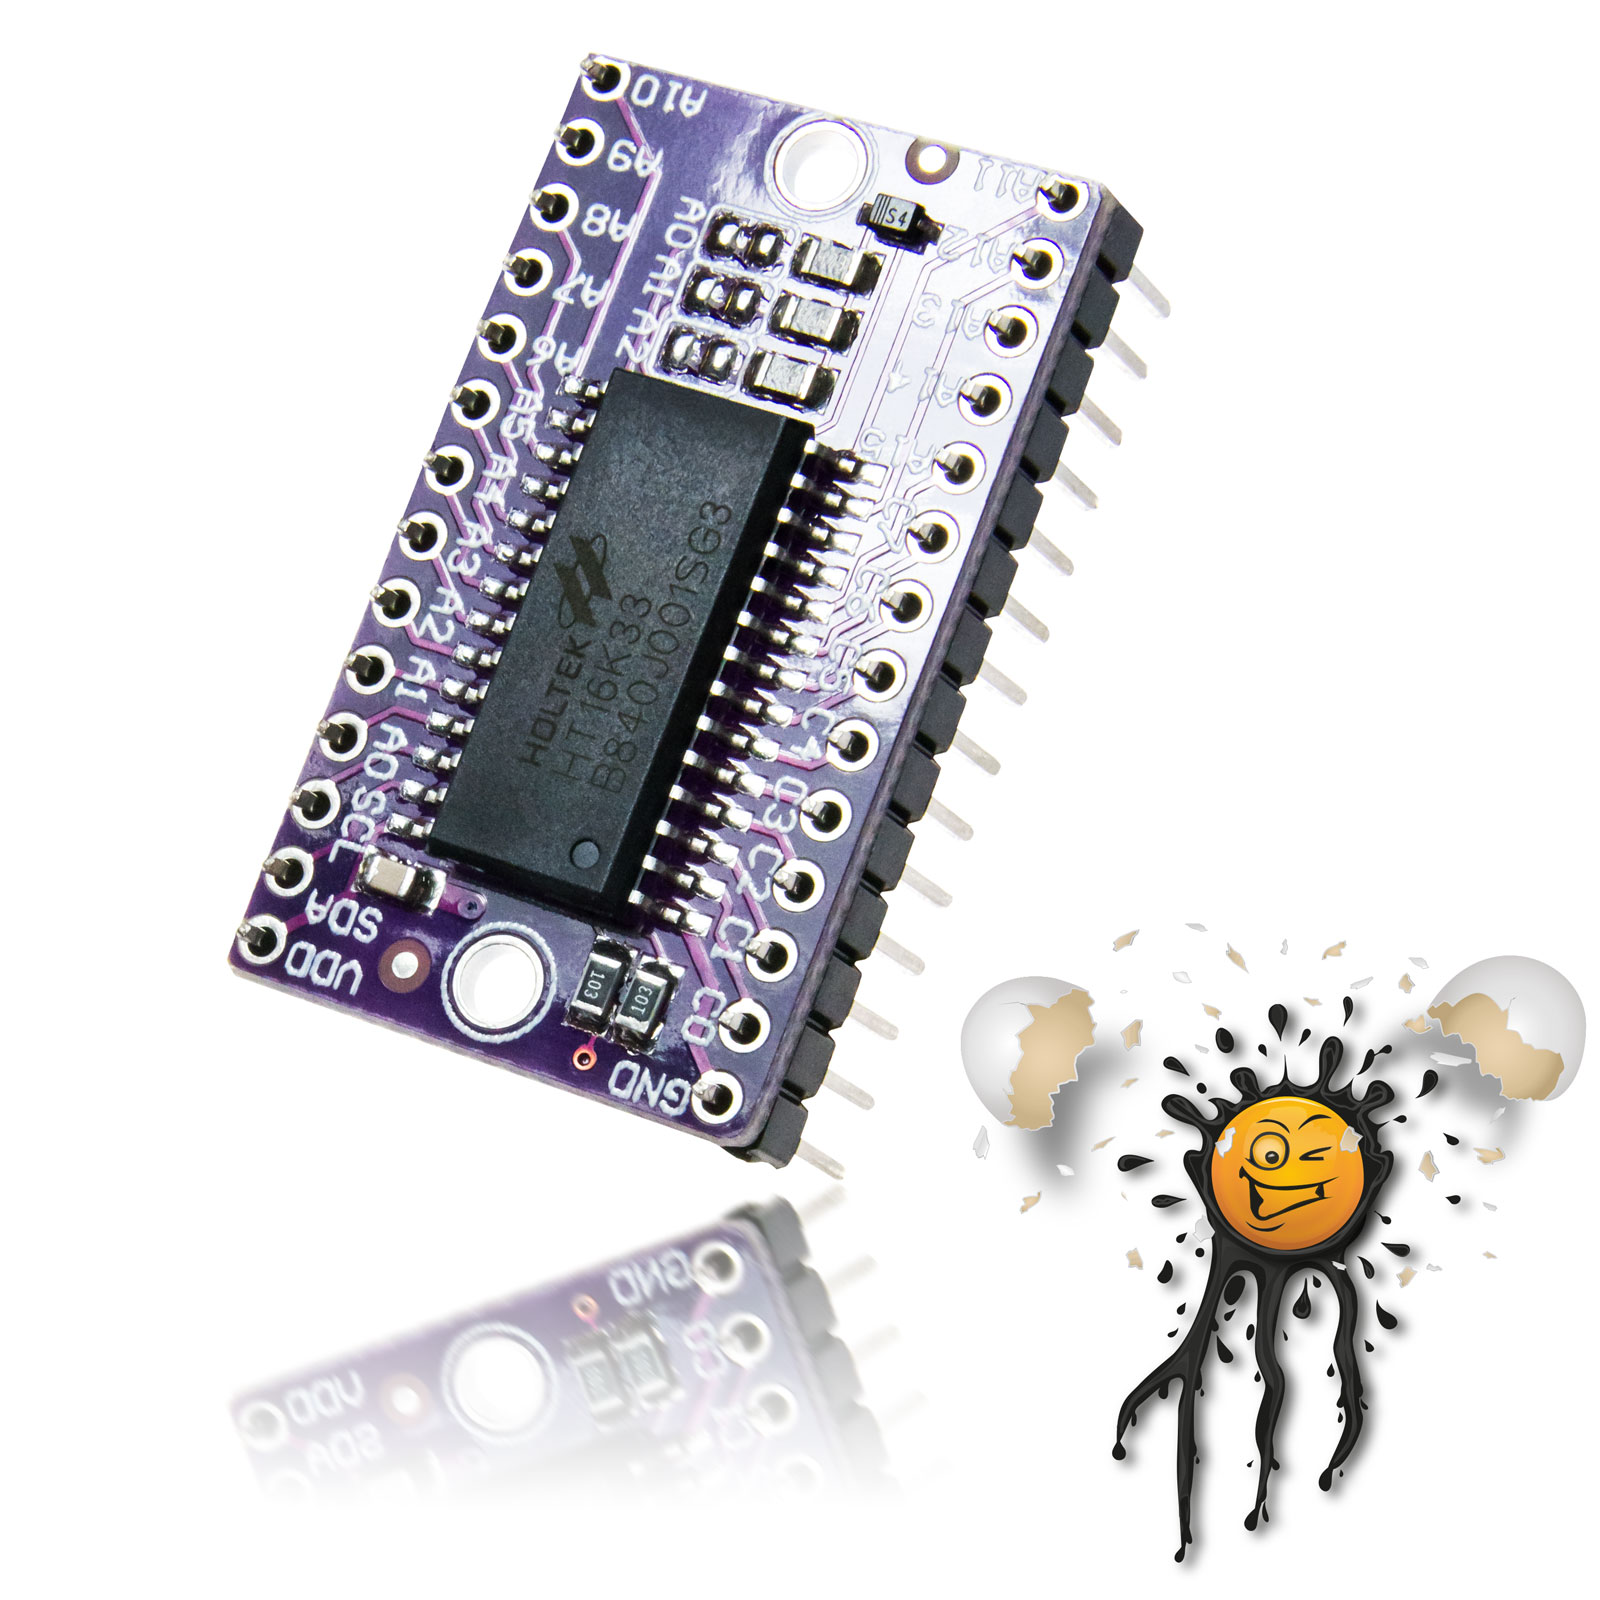 HT16K33 LED DOT Matrix Driver Board mit Pinleiste